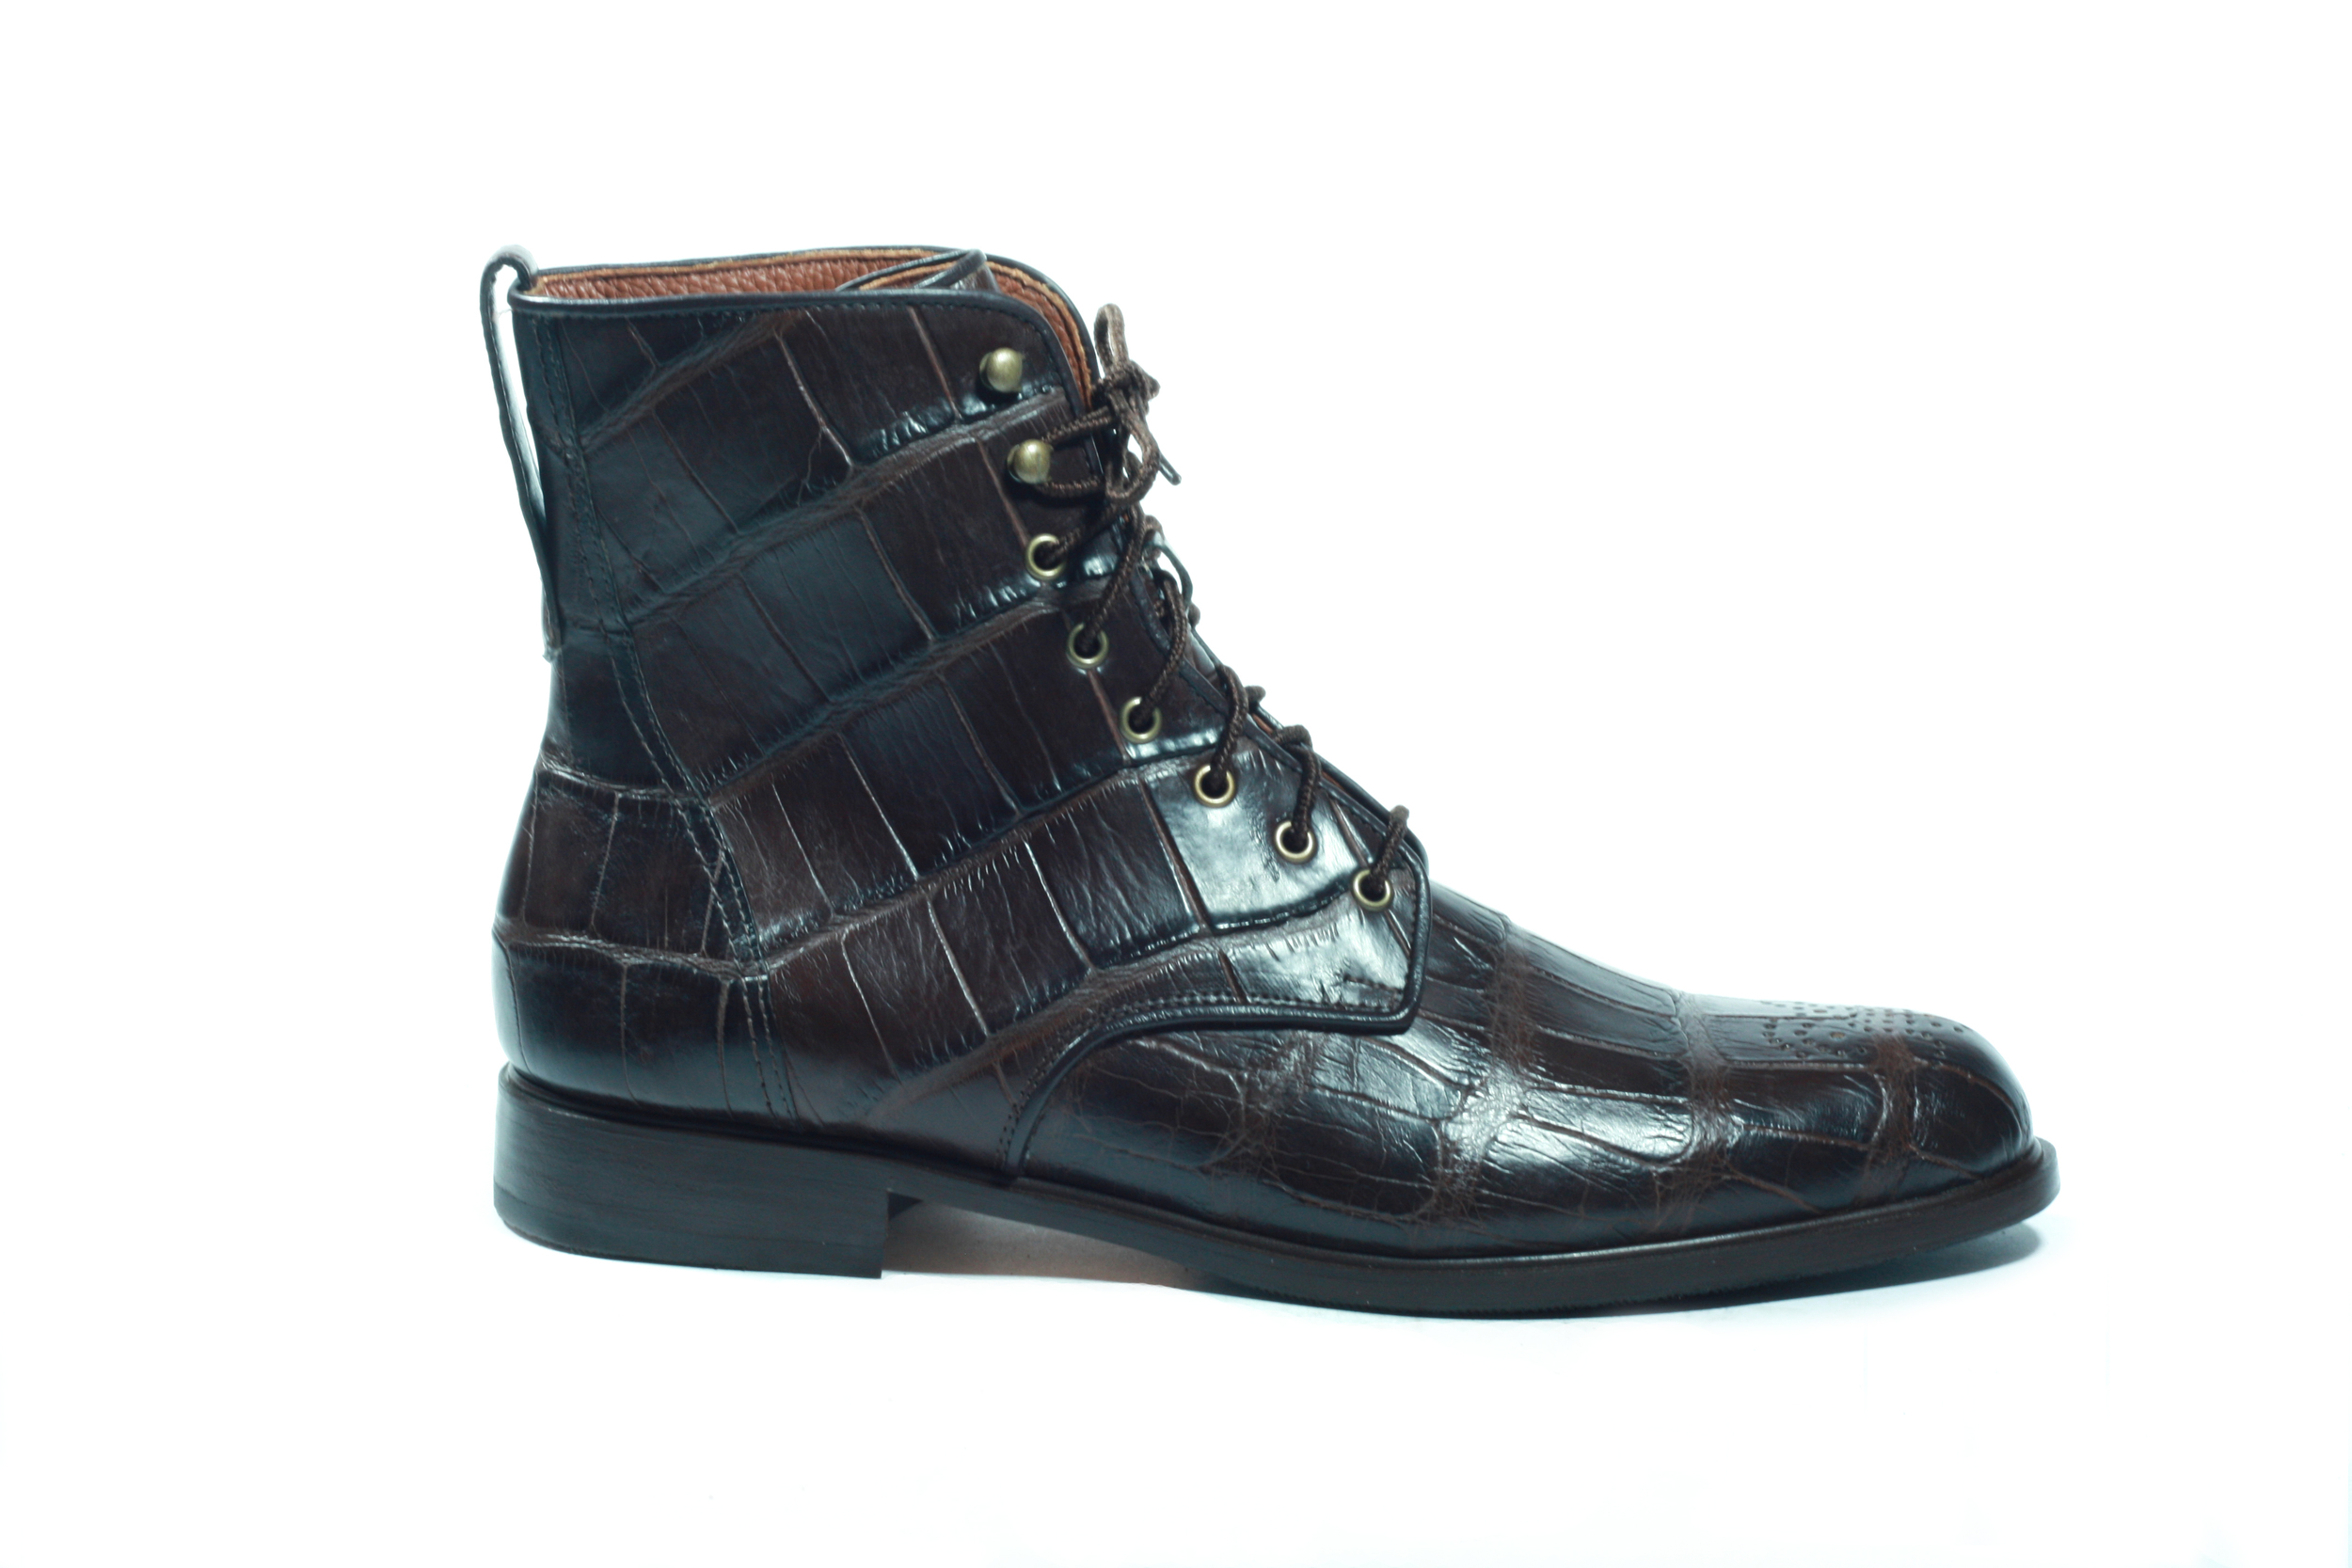 Brown Alligator lace-up boot